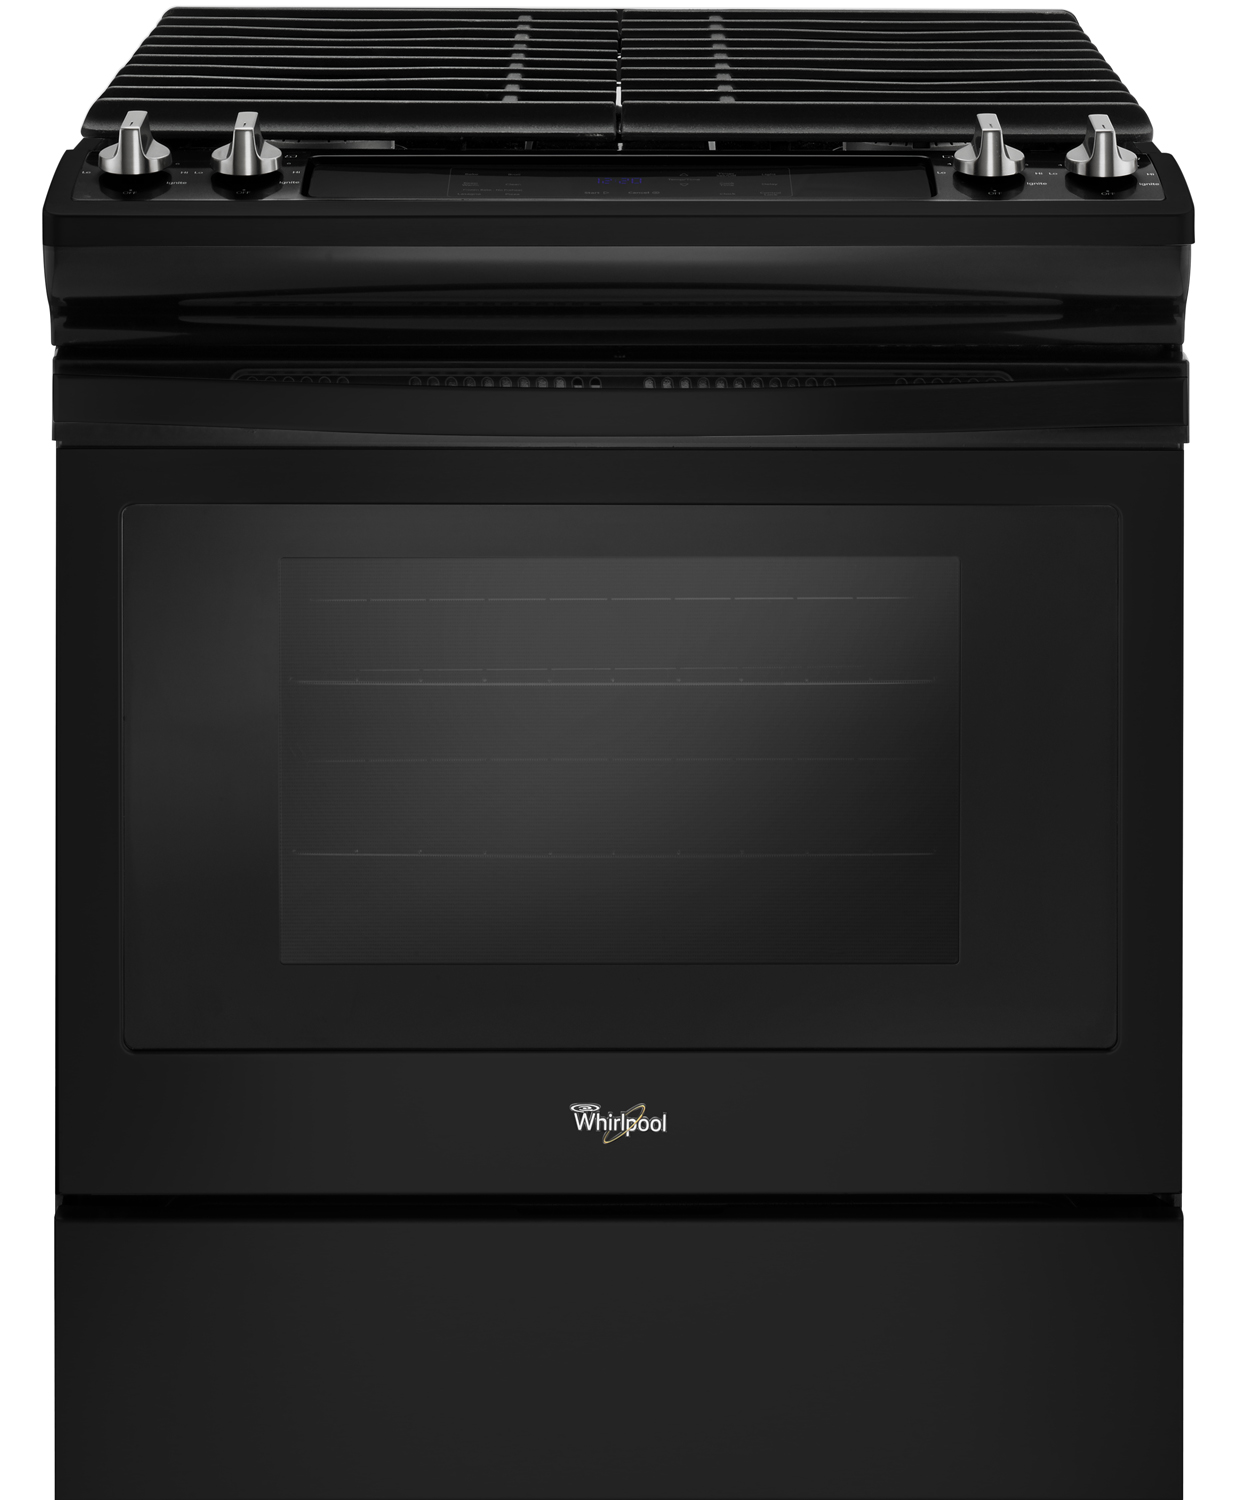 whirlpool electric range whirlpool black slide in gas range weg515s0fb 10064